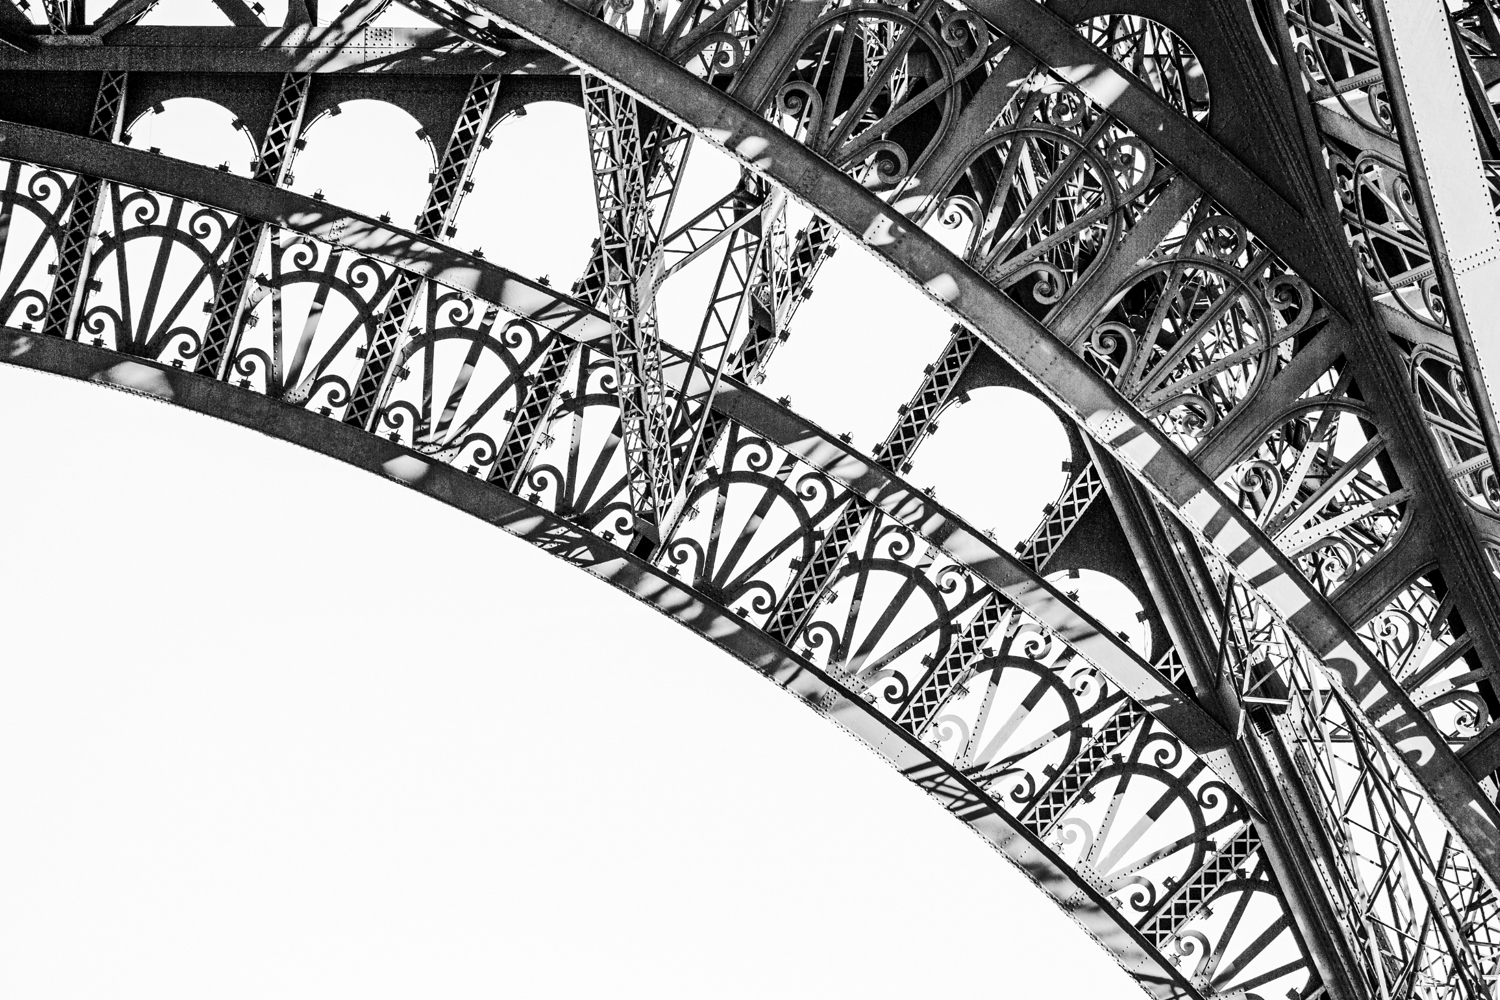 Eiffel Tower, Section of Arch